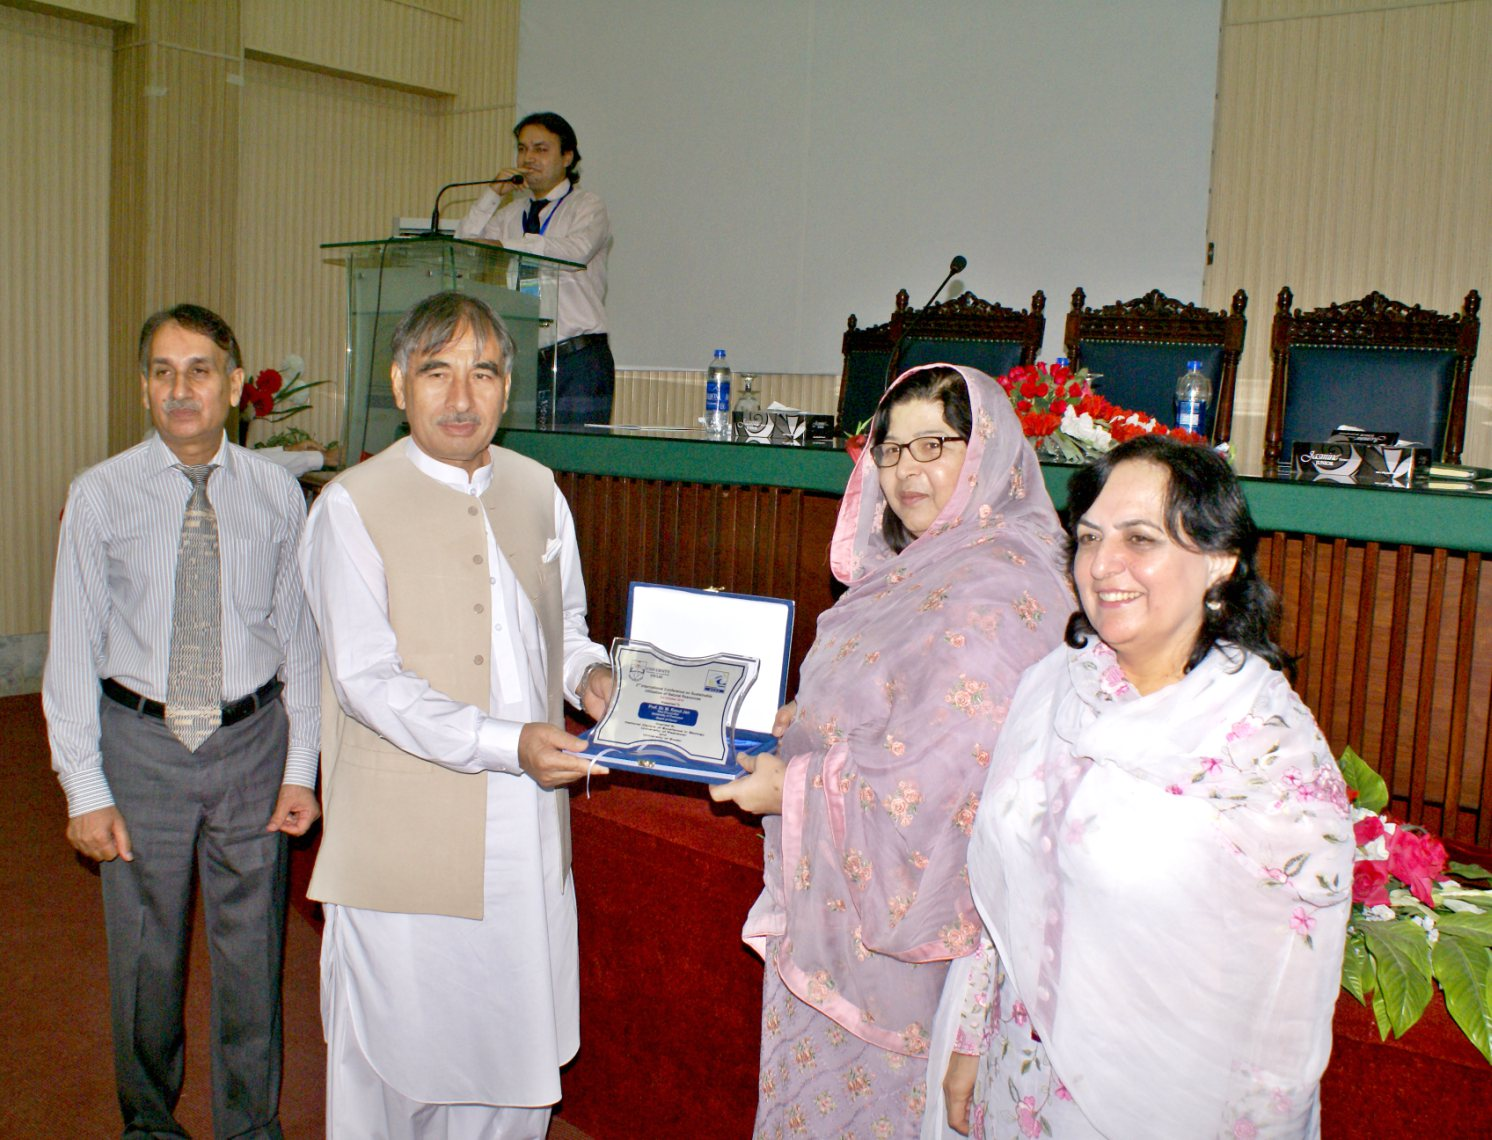 Vice Chancellor UoP Prof. Dr. Muhammad Rasul Jan presenting souvenir to Minister for Labor and Minerals Ms. Aneesa Zeb Tahir kheili at the Intl Conference on sustainable resources at the University of Peshawar